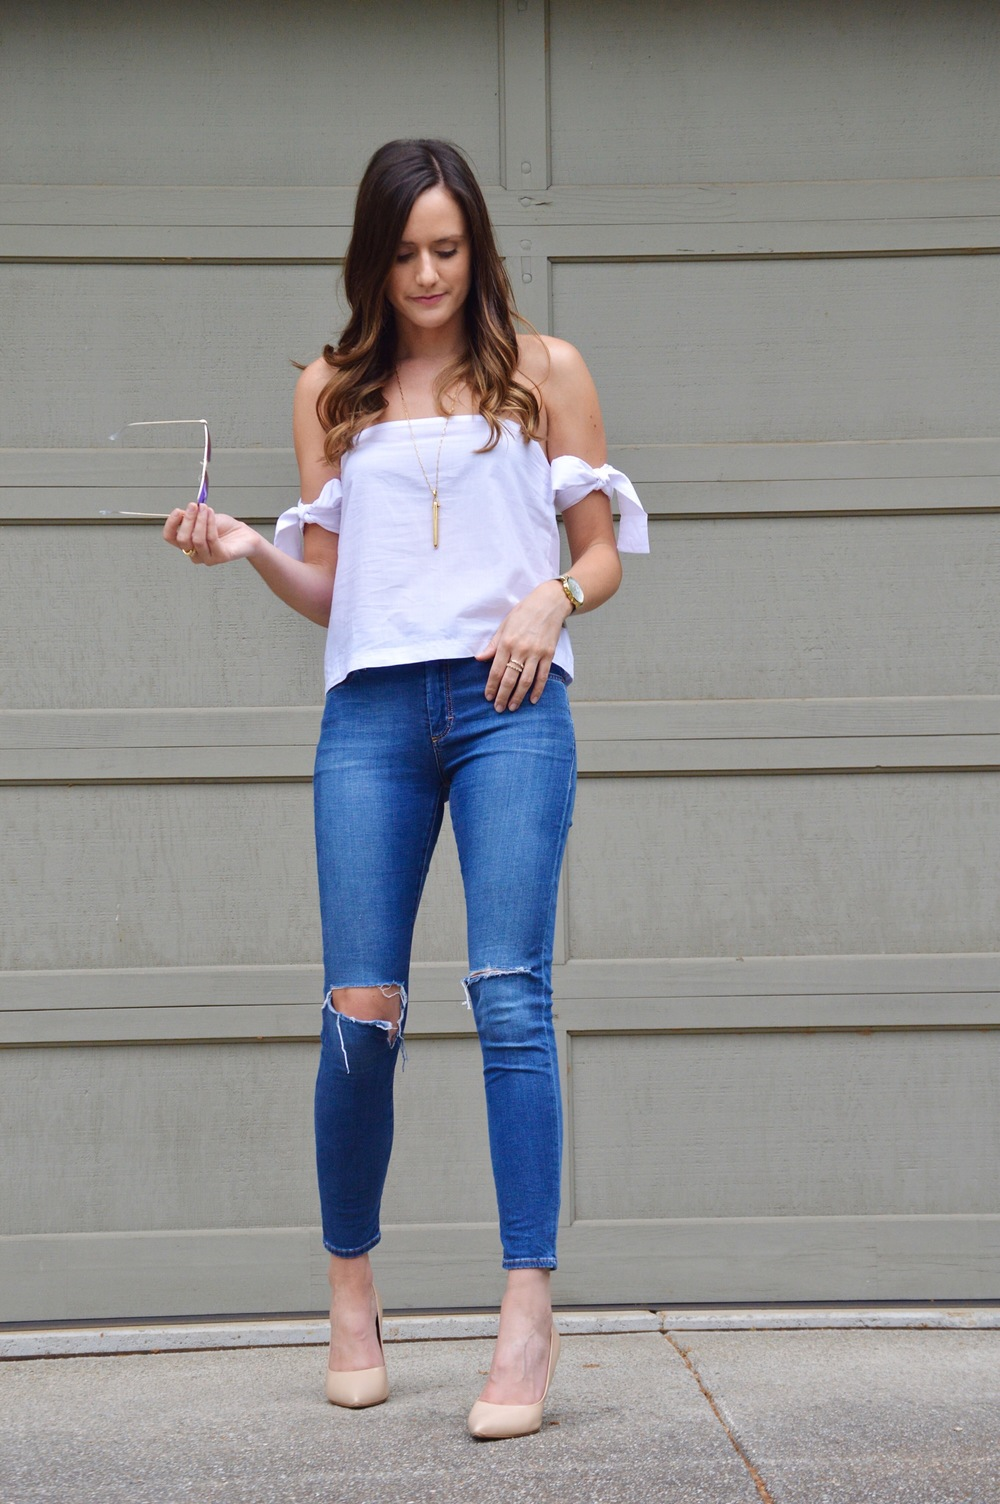 Shop the Look Below. Top: c/o SheIn. Jeans: Nordstrom. Shoes: Steve Madden. Necklace: Stella & Dot. Sunglasses: Ray-Ban. Watch: ILY Couture. Rings: c/o BaubleBar